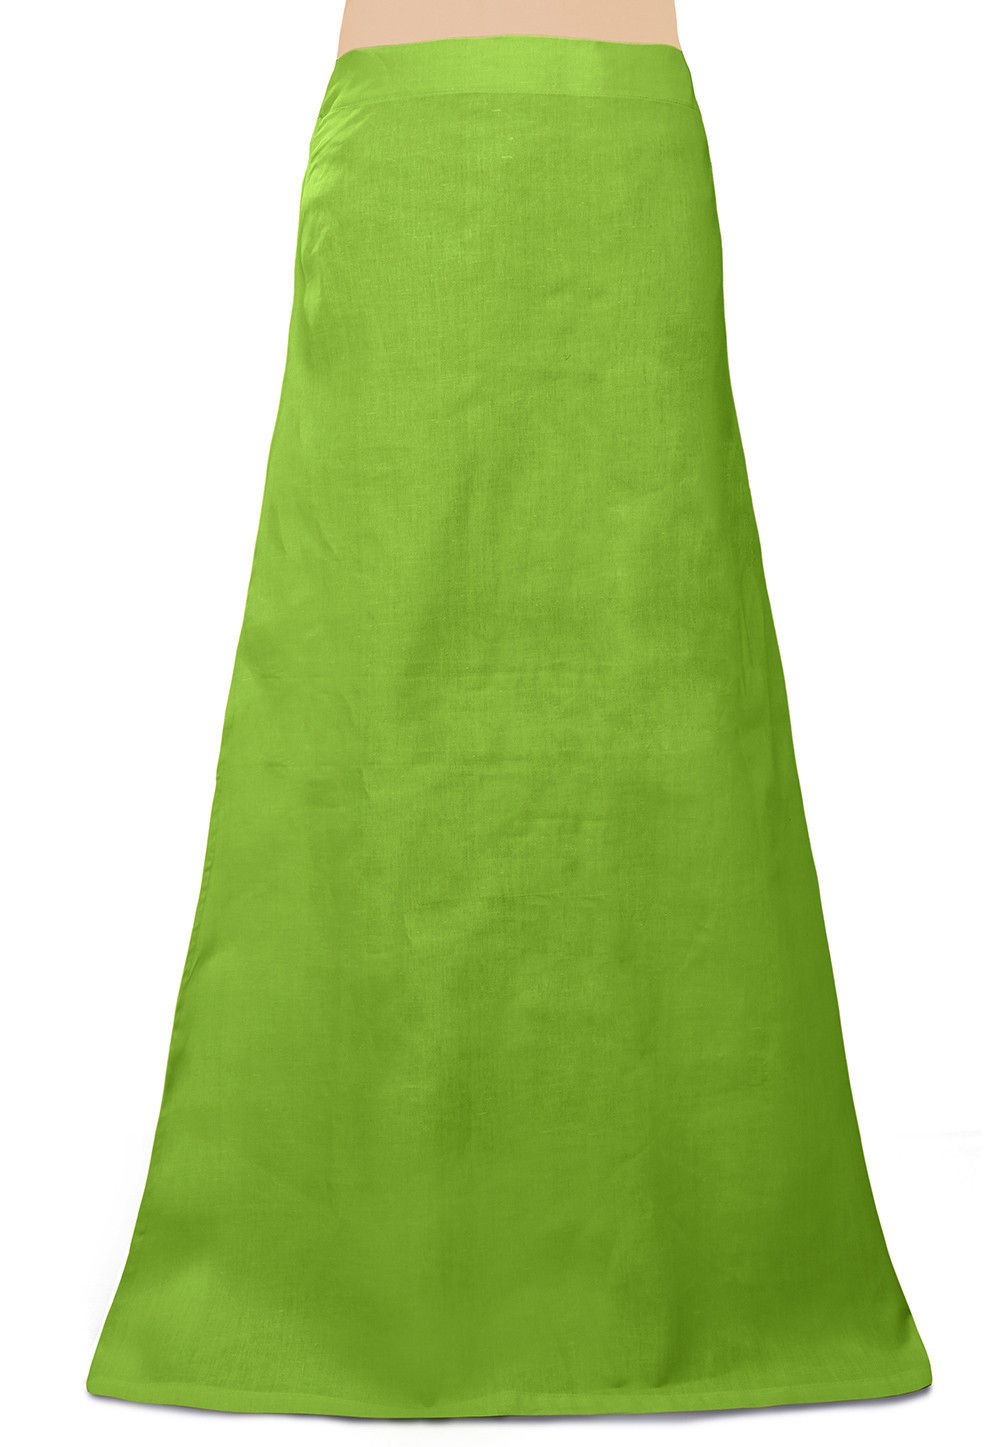 Plain Cotton Readymade Petticoat in Light Green